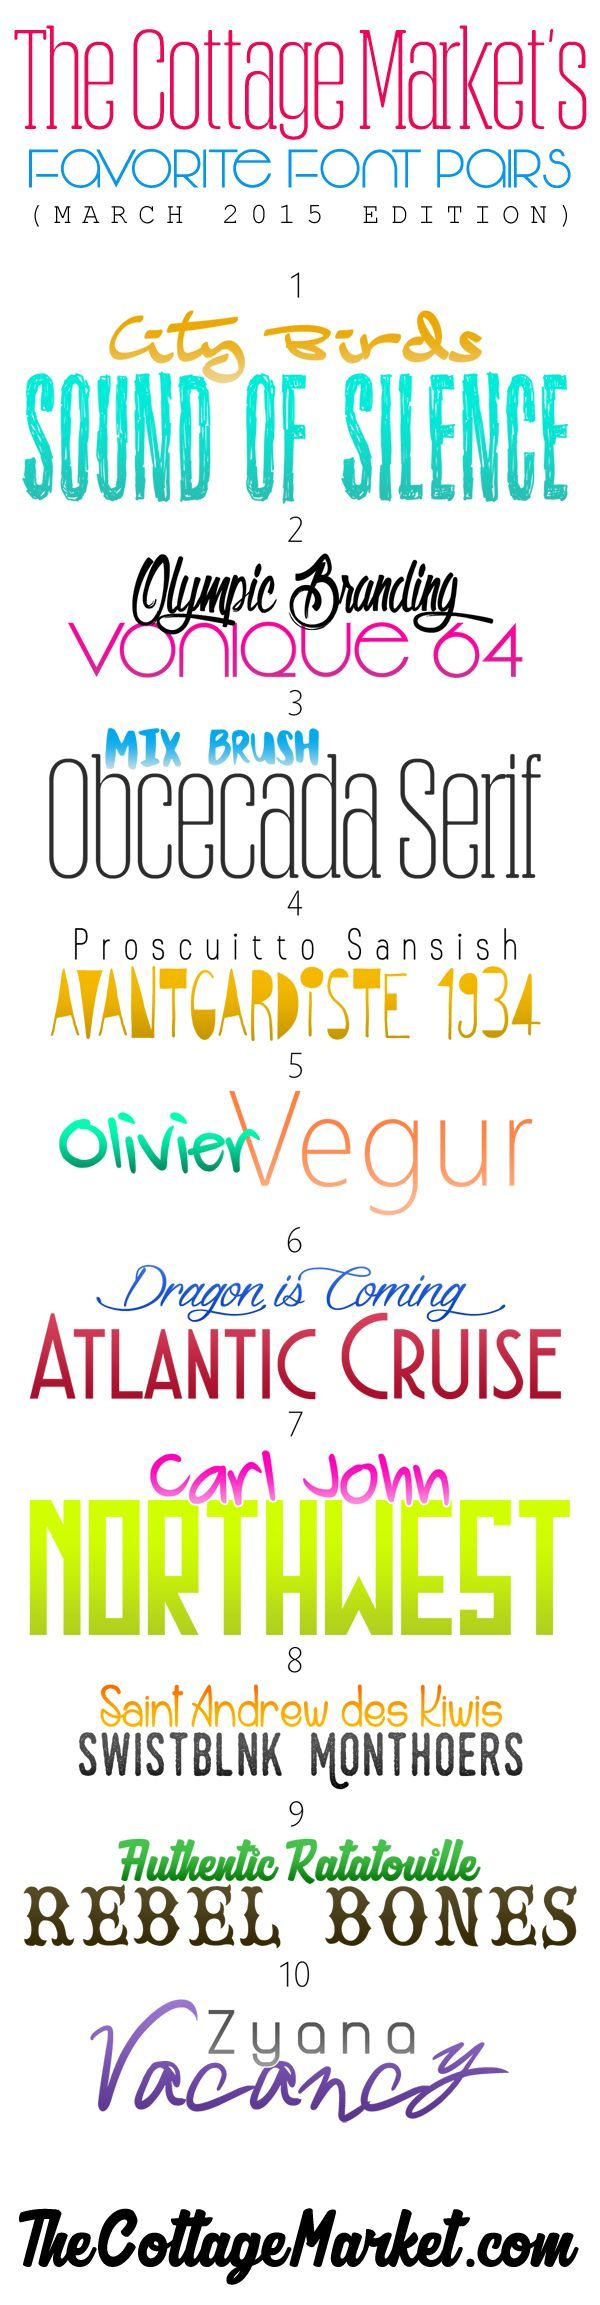 The Cottage Market's Favorite FREE Font Pairs {March 2015 Edition} /// FREE FONTS - The Cottage Market